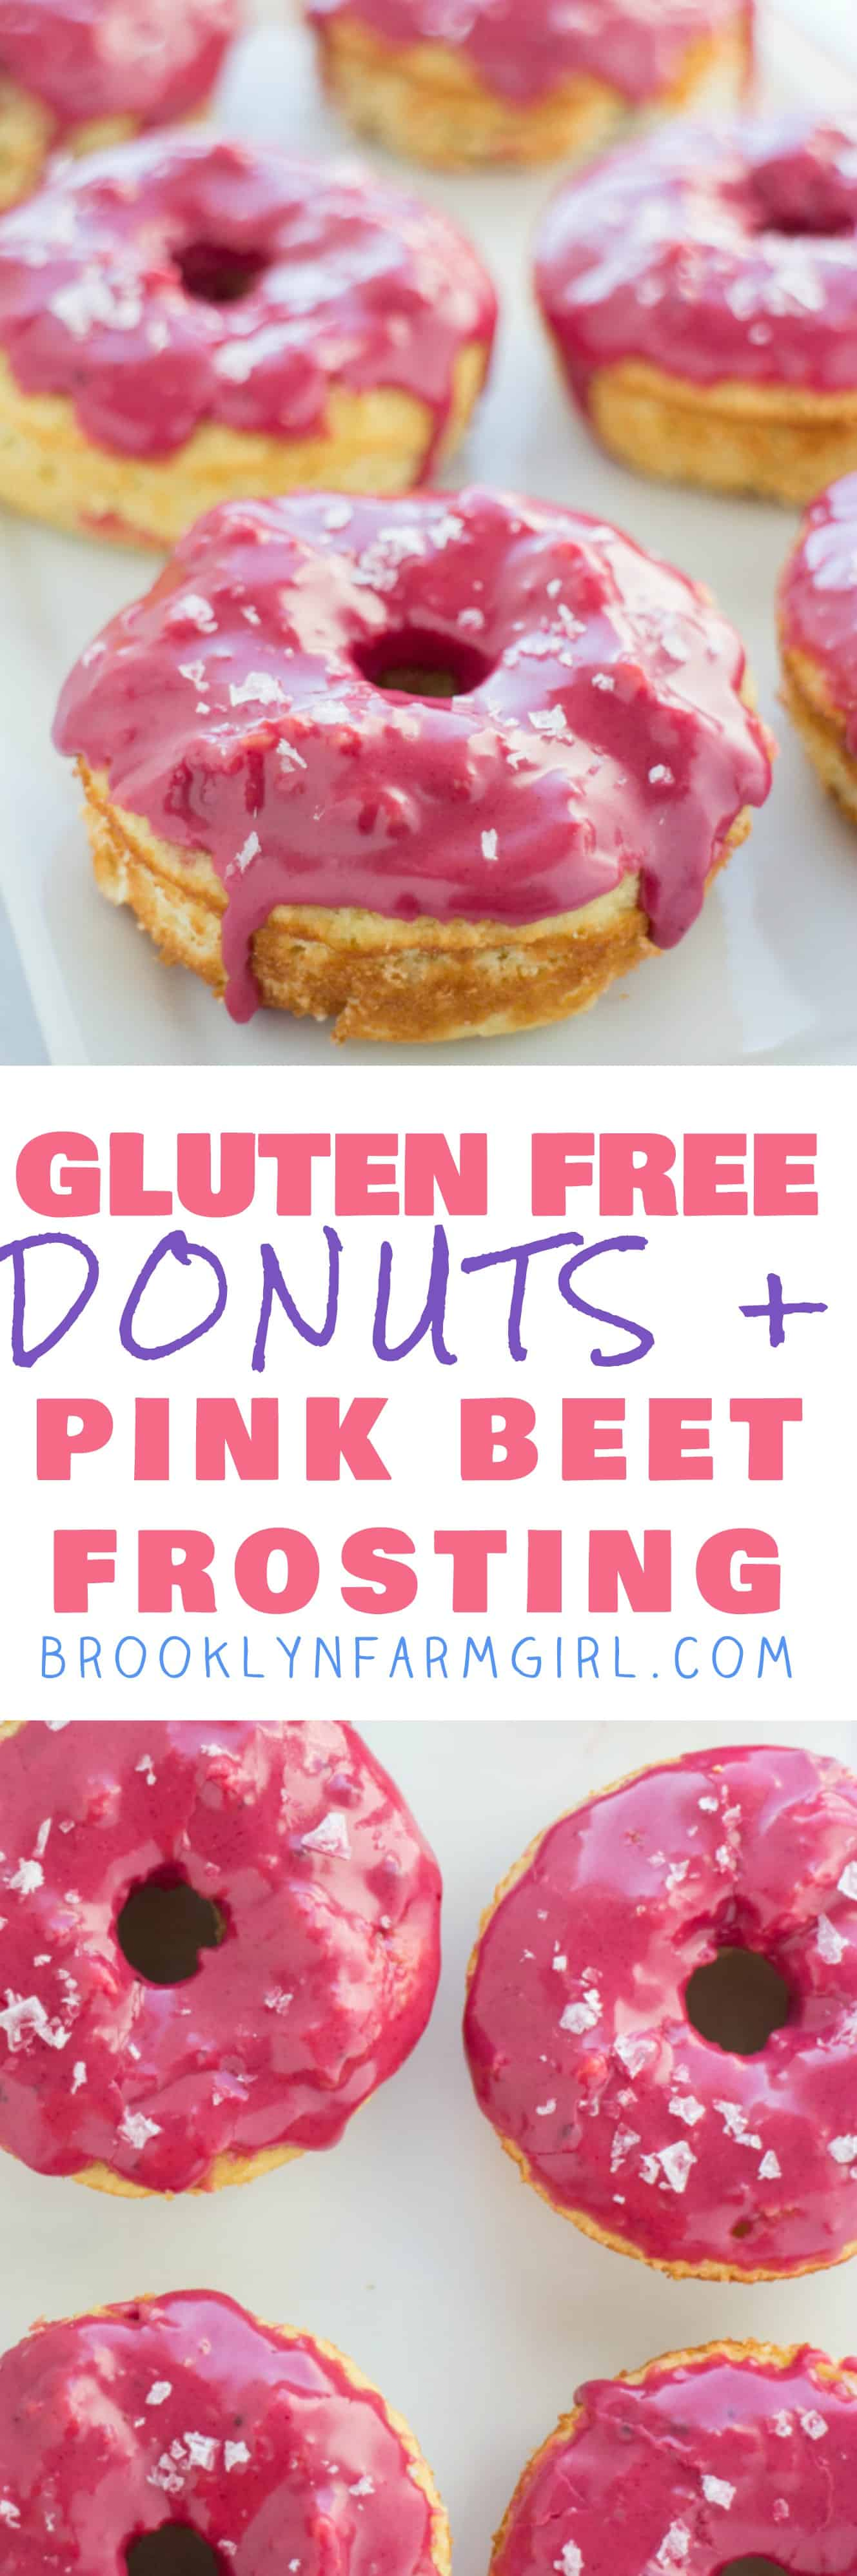 GLUTEN FREE Baked Vanilla Donuts recipe with a bright pink frosting on top!  The icing glaze is completely all natural!   These cute donuts are great for birthday party, bridal party and wedding desserts!  They're always a favorite at PTA meetings too!